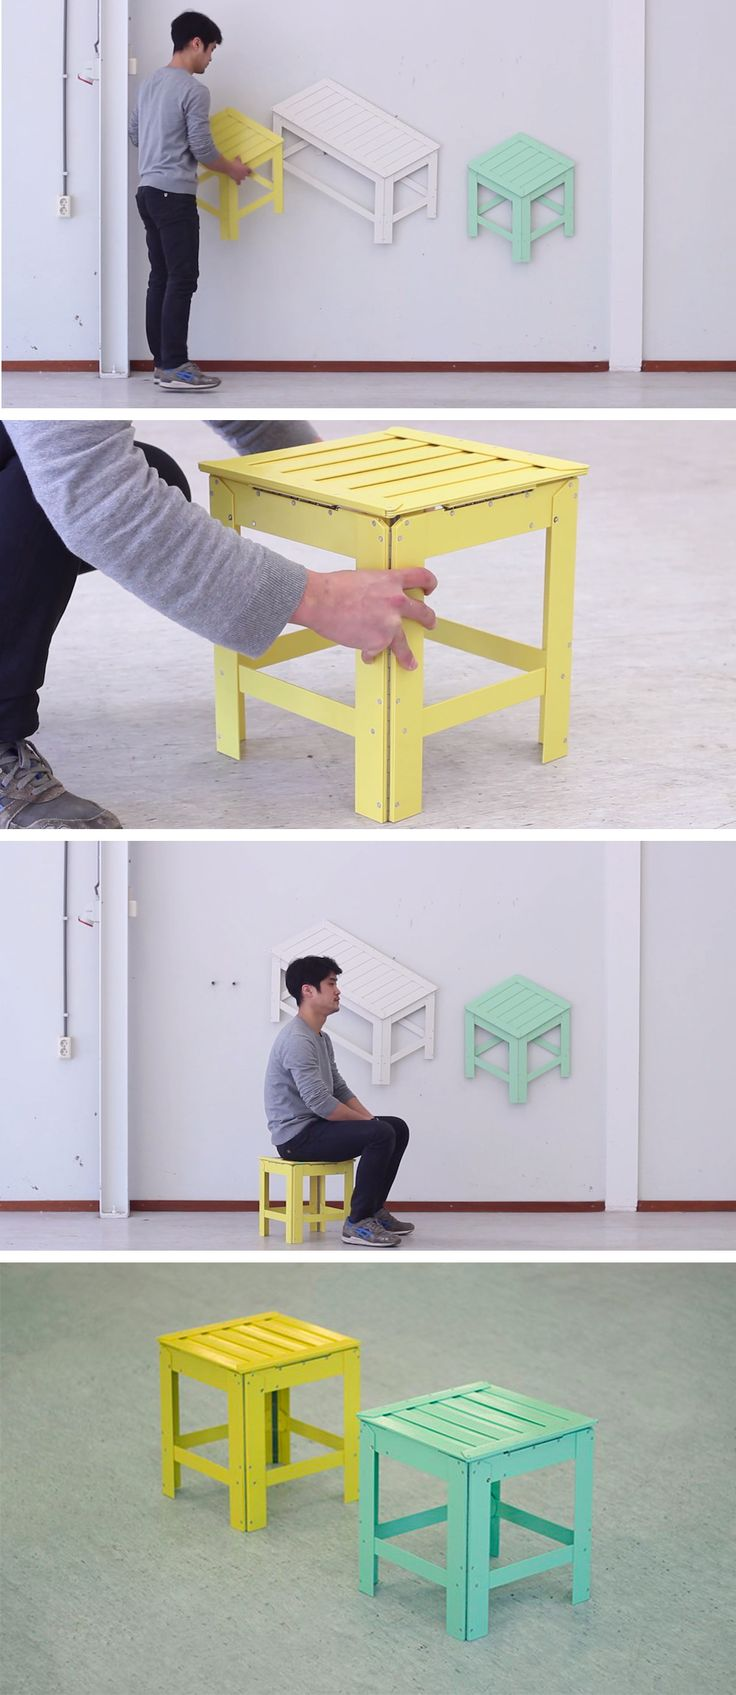 Collapsible Furniture That Transforms From Two to Three Dimensions Designed by Jongha Choi